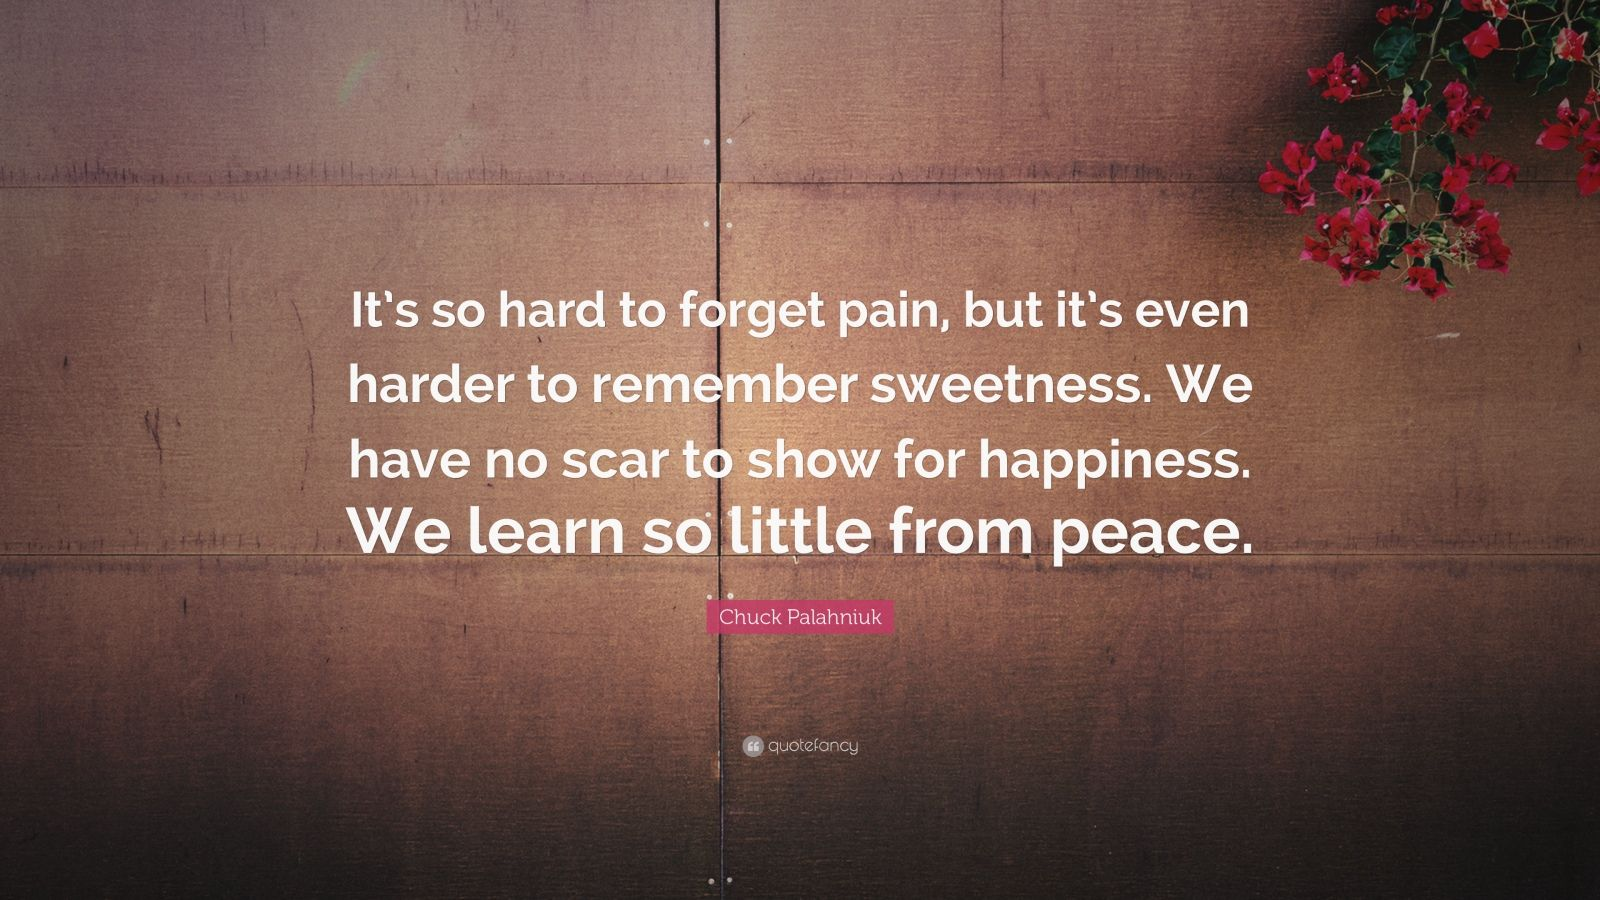 Peace Love And Happiness Quotes Interesting Happiness Quotes 100 Wallpapers  Quotefancy